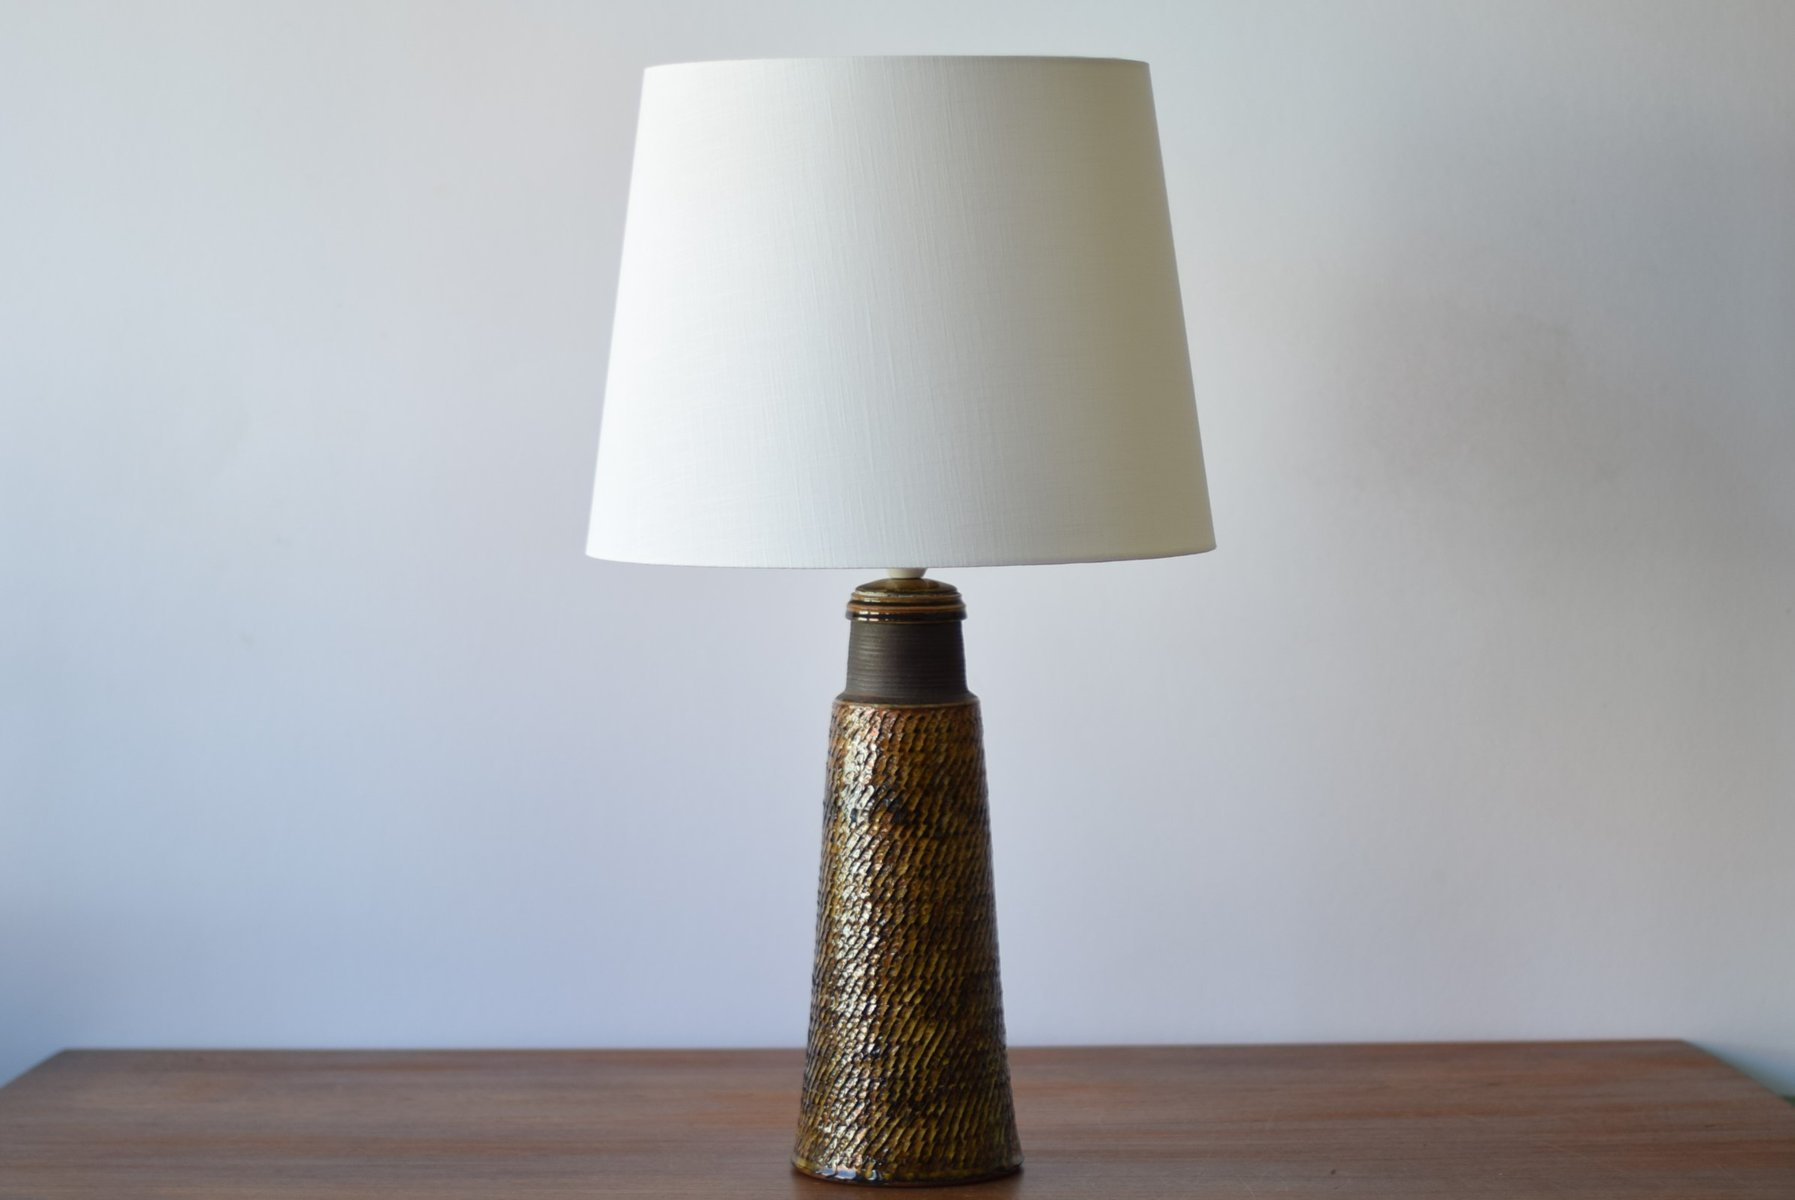 Superior Tall Danish Ceramic Table Lamp With Amber Glaze By Nils Kähler For HAK,  1960s For Sale At Pamono